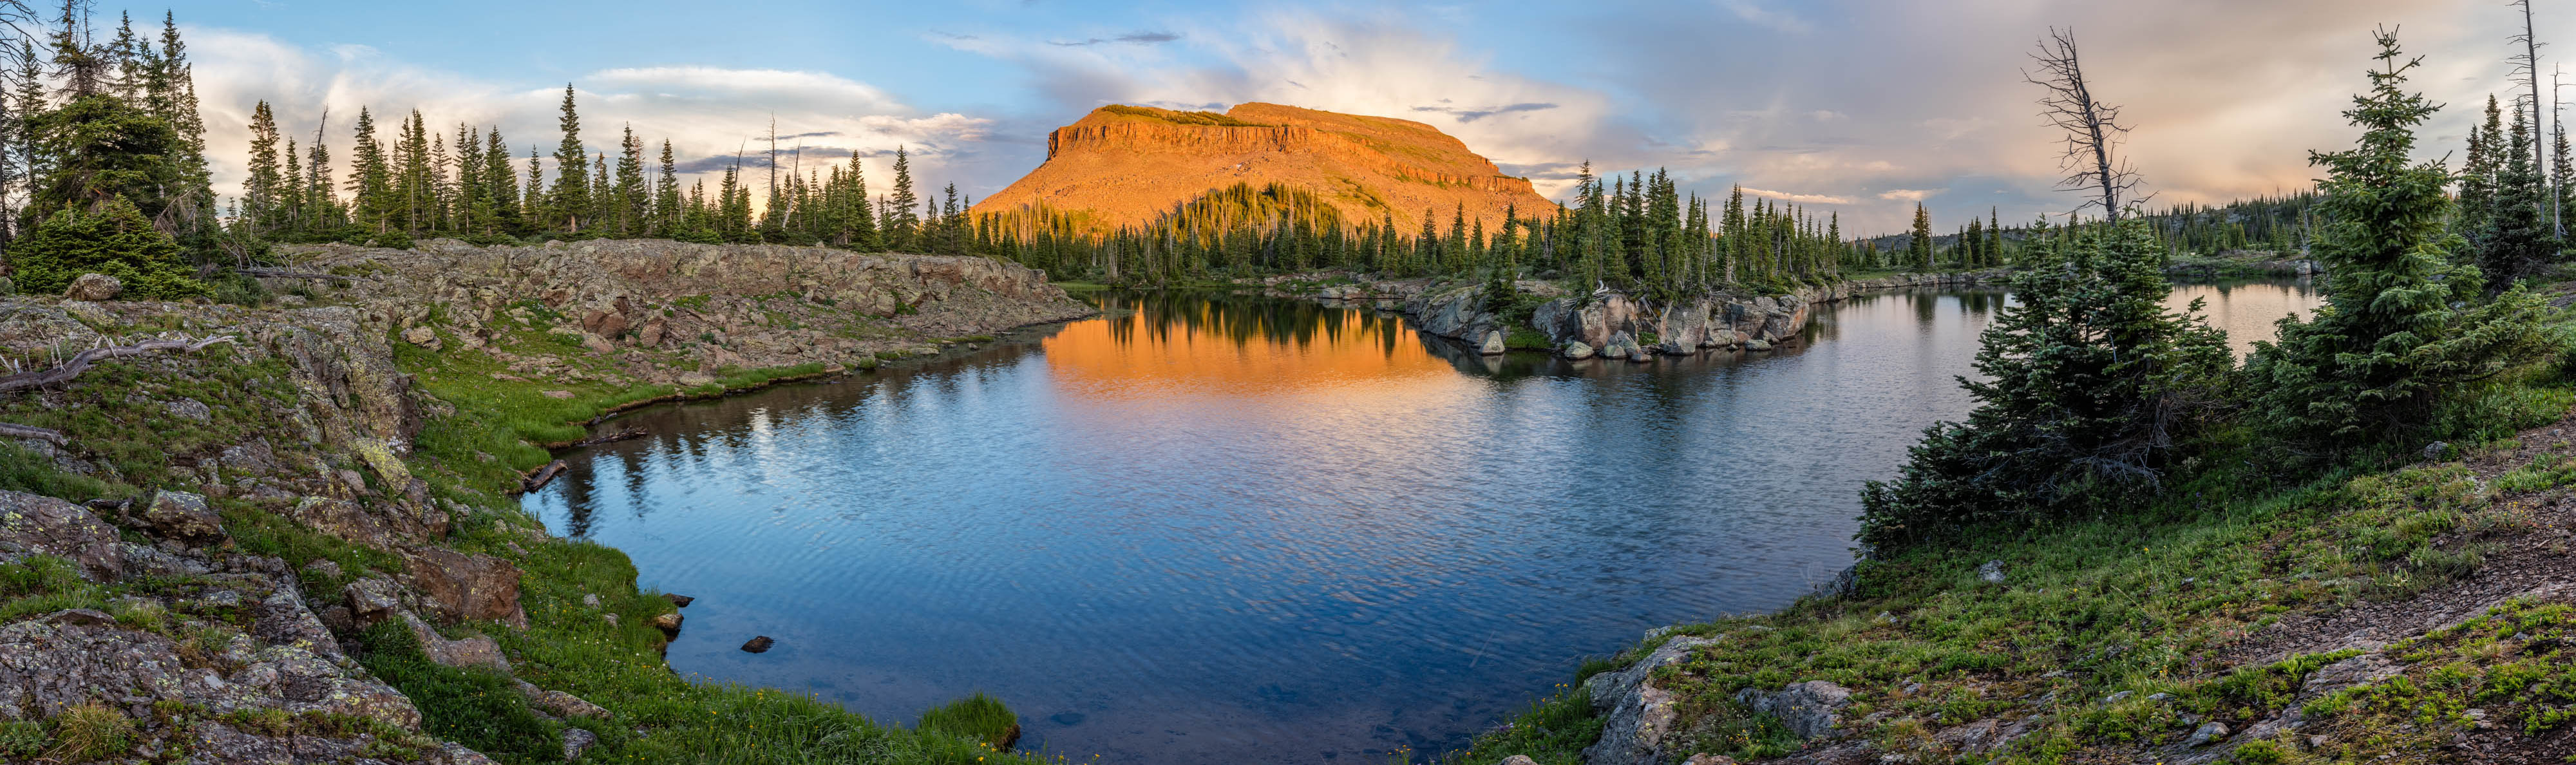 photo - Flat Tops Wilderness Area by John Fielder